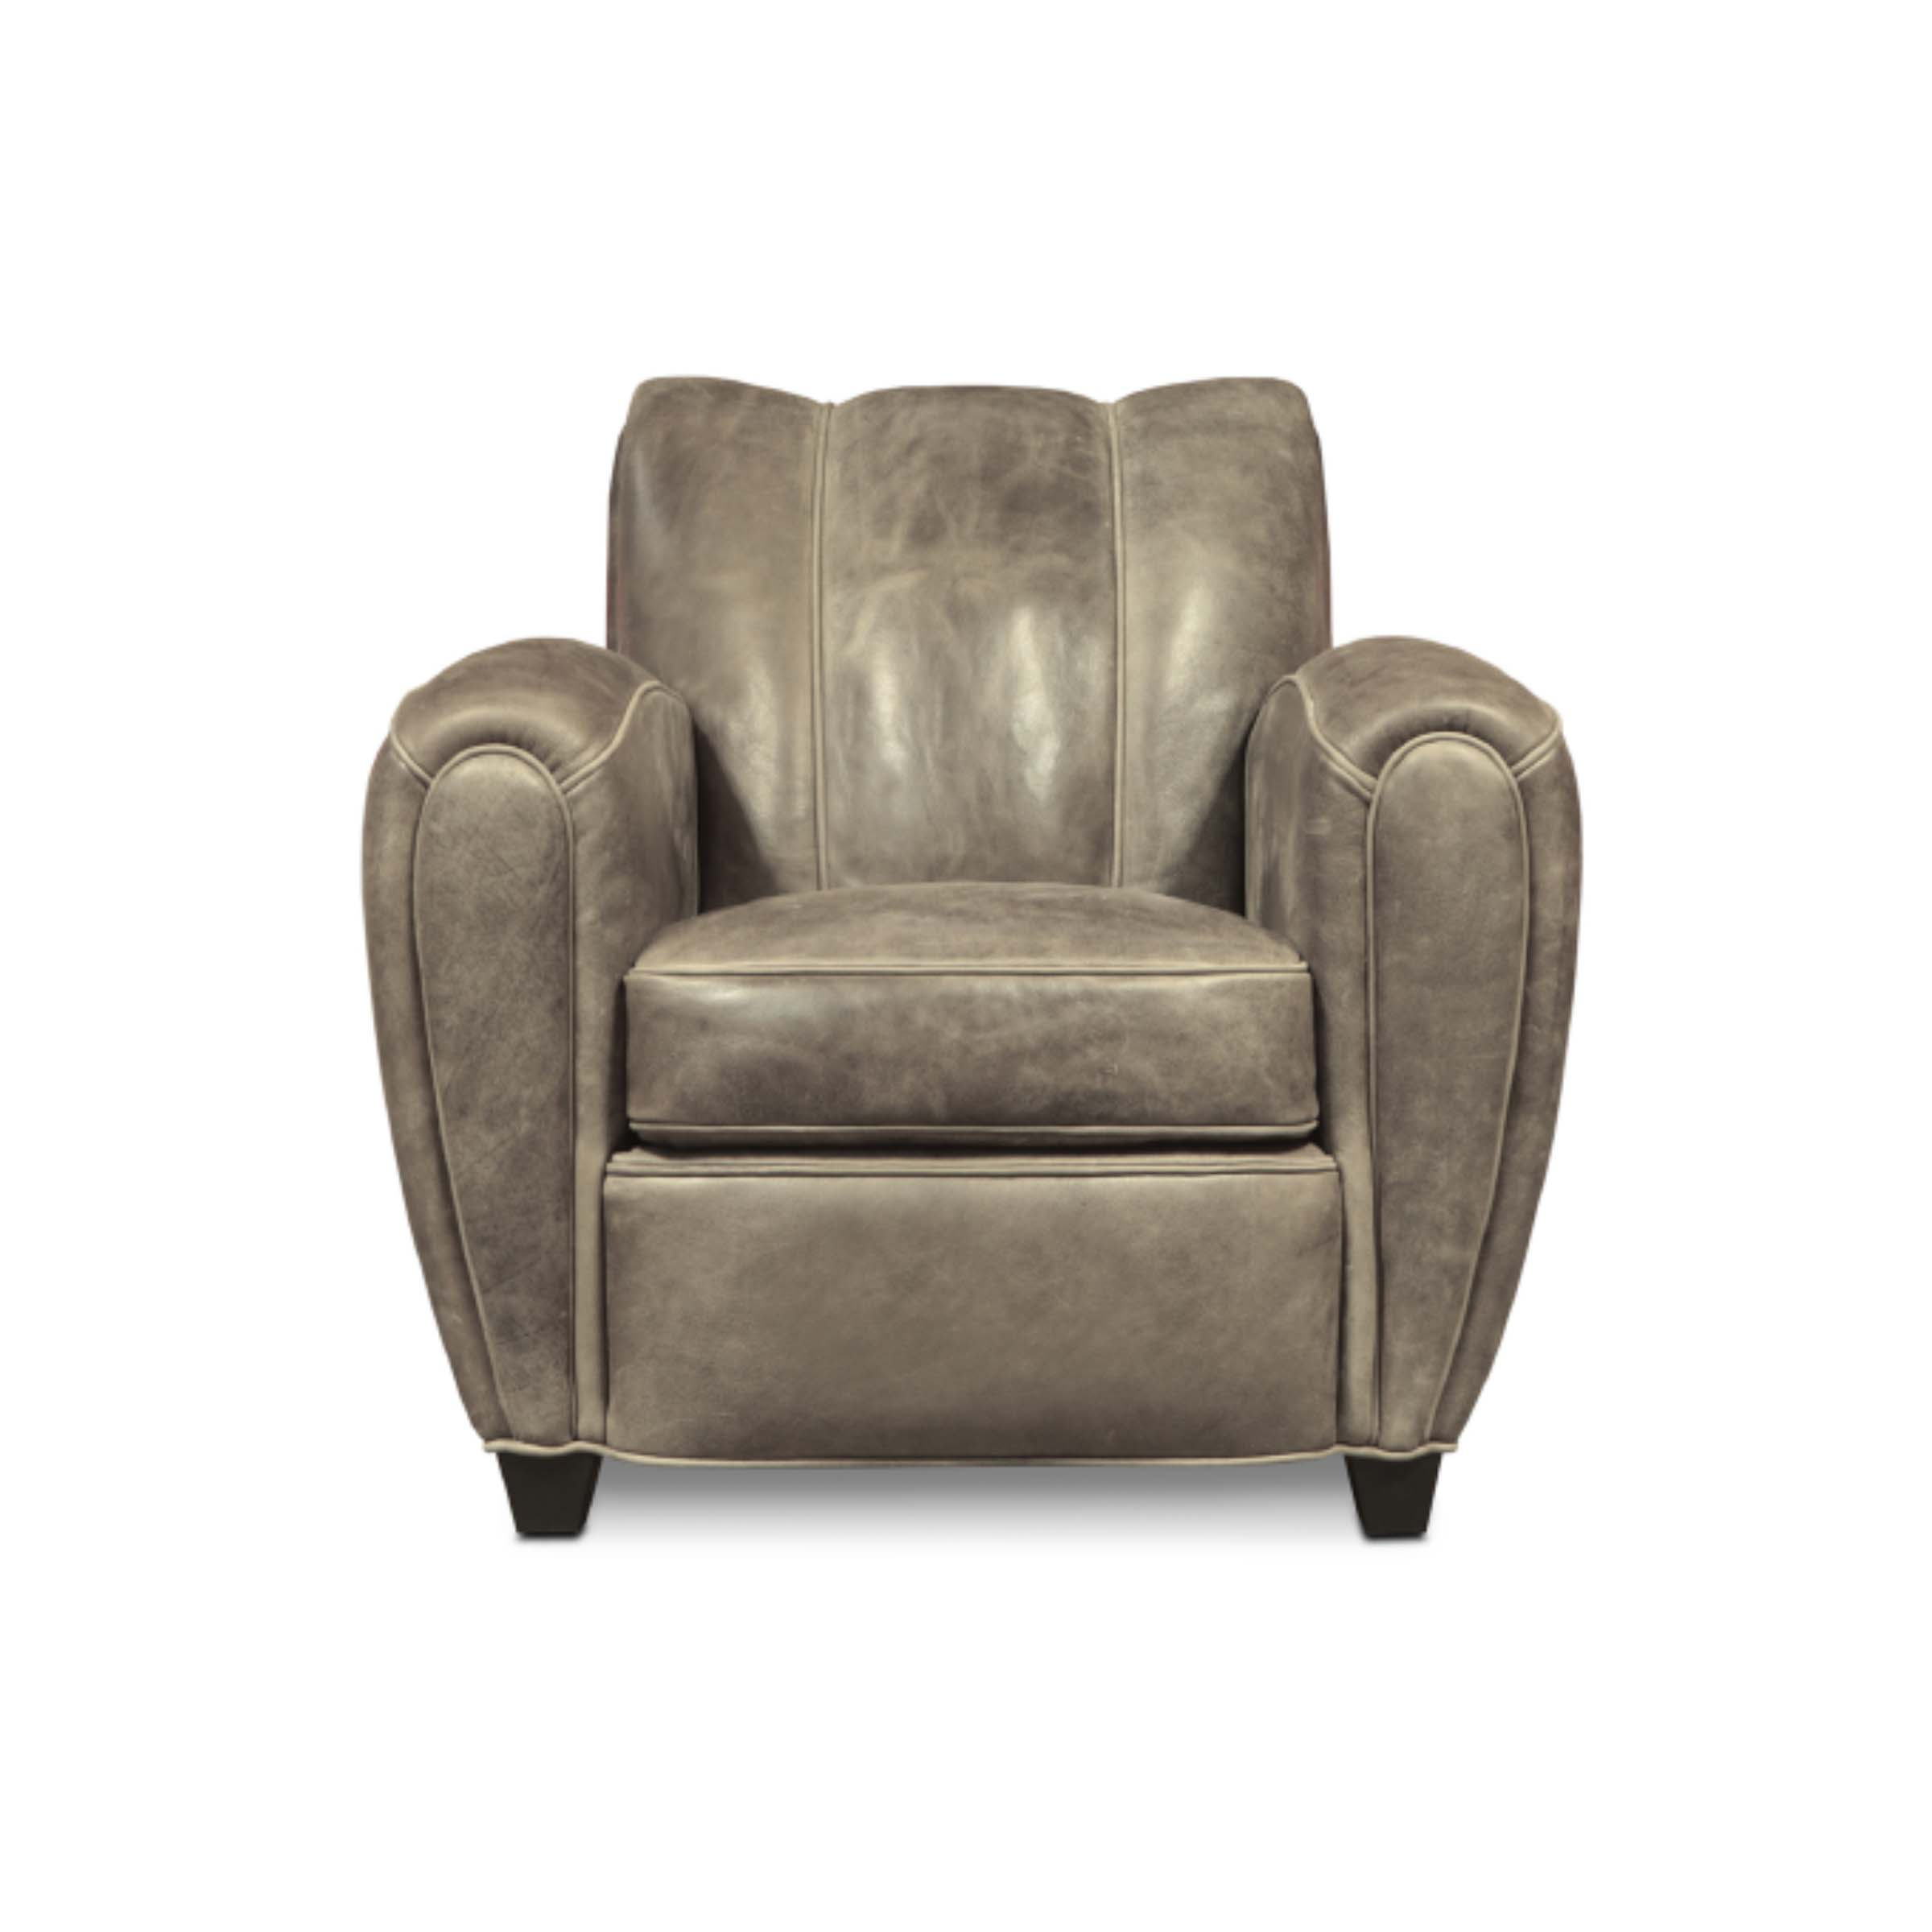 MANON - 1E Accent Chair Cambridge Wolf